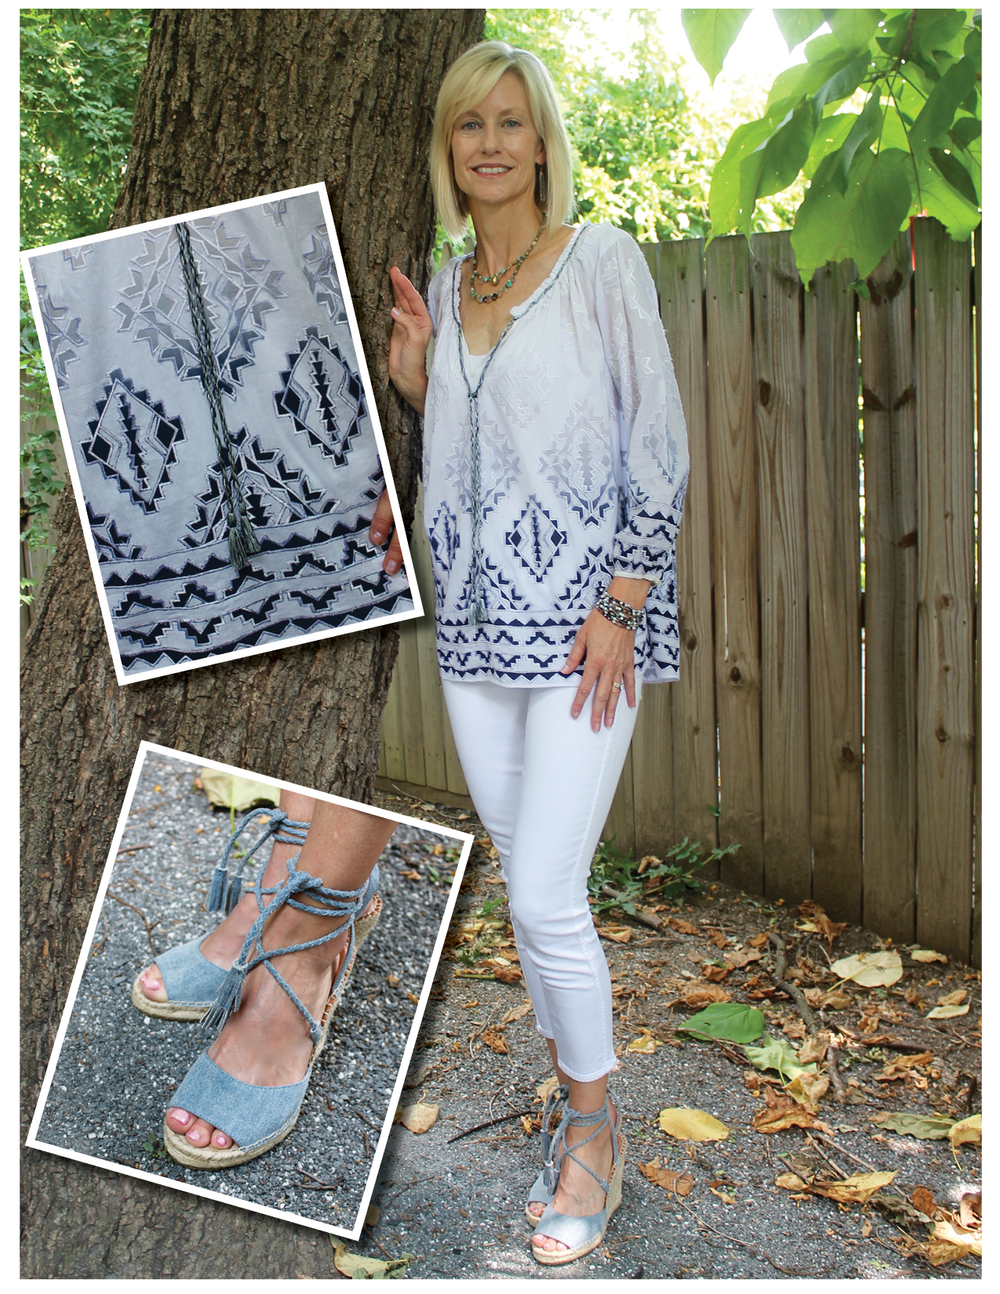 dd54eeb0187b Few outfits say summer as much as the combo of billowy peasant blouses and  lace-up sandals. The Calypso top flows freely and won t cling in sweltering  temps ...